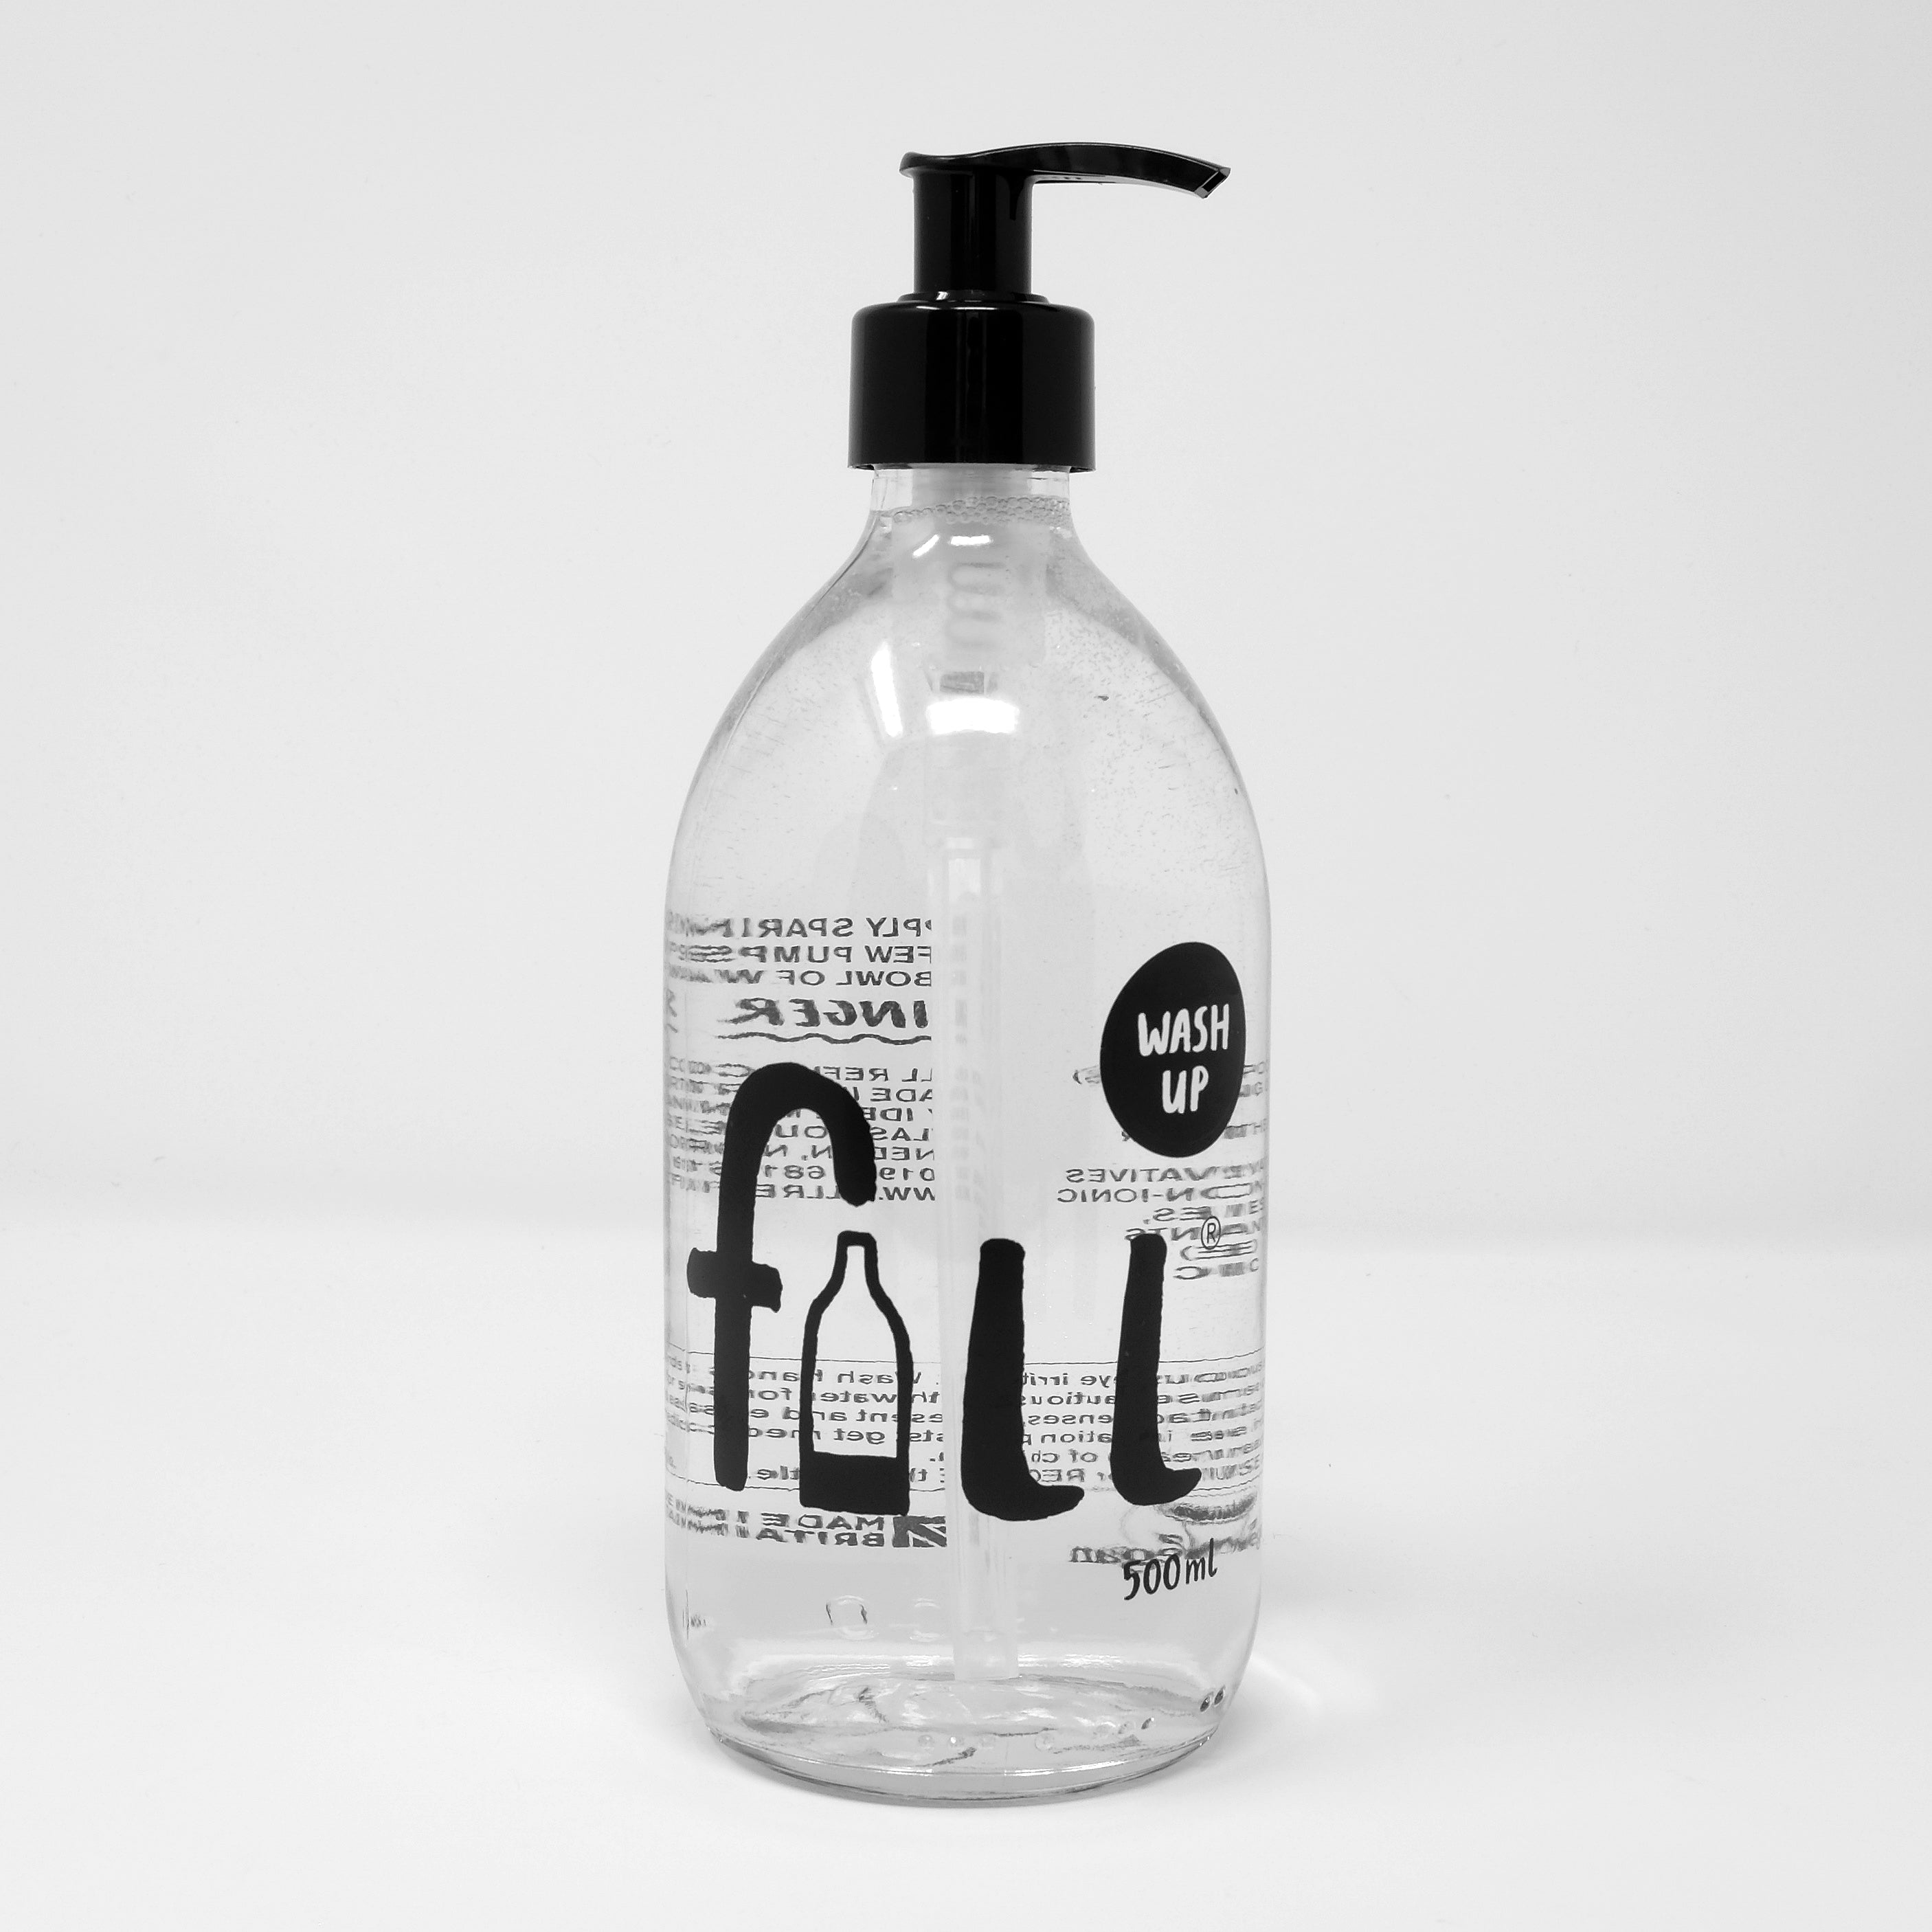 fill-washing-up-liquid-ginger-500ml-image